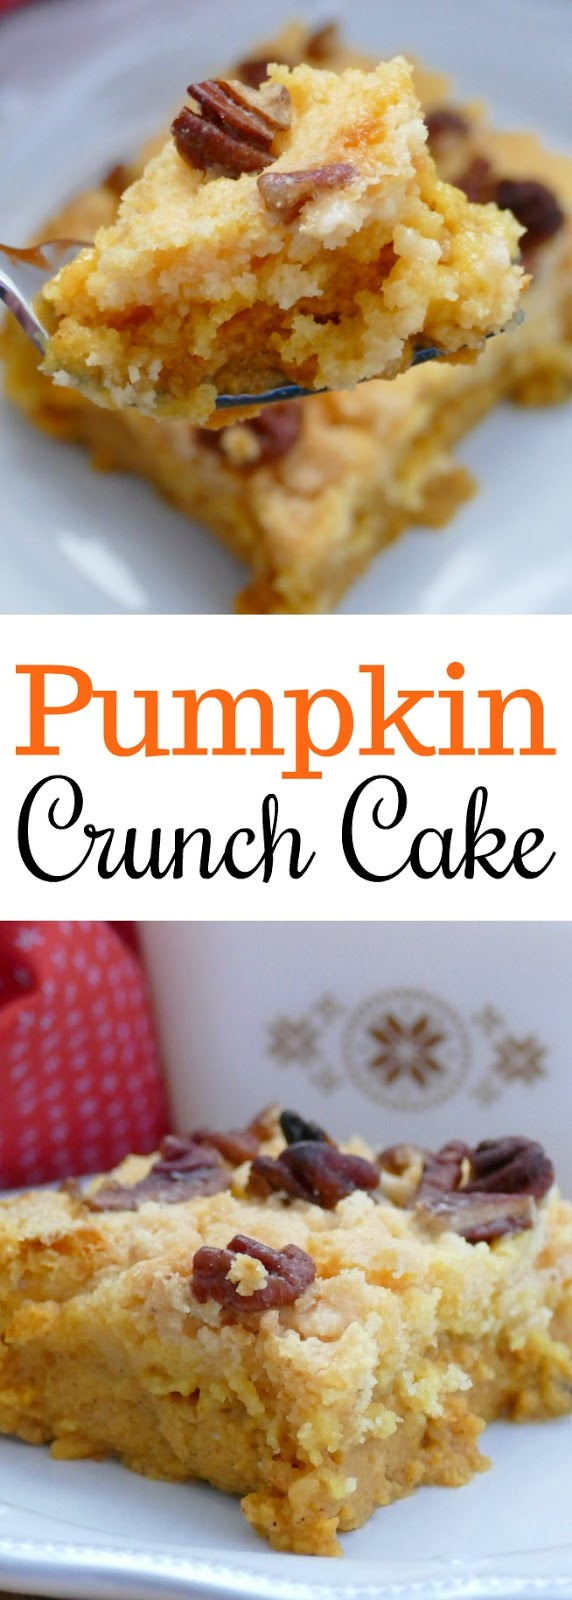 This is the only pumpkin dessert you'll need to make this fall! The bottom is like a delicious custard pudding with a crunchy cake crust on top! SO heavenly!